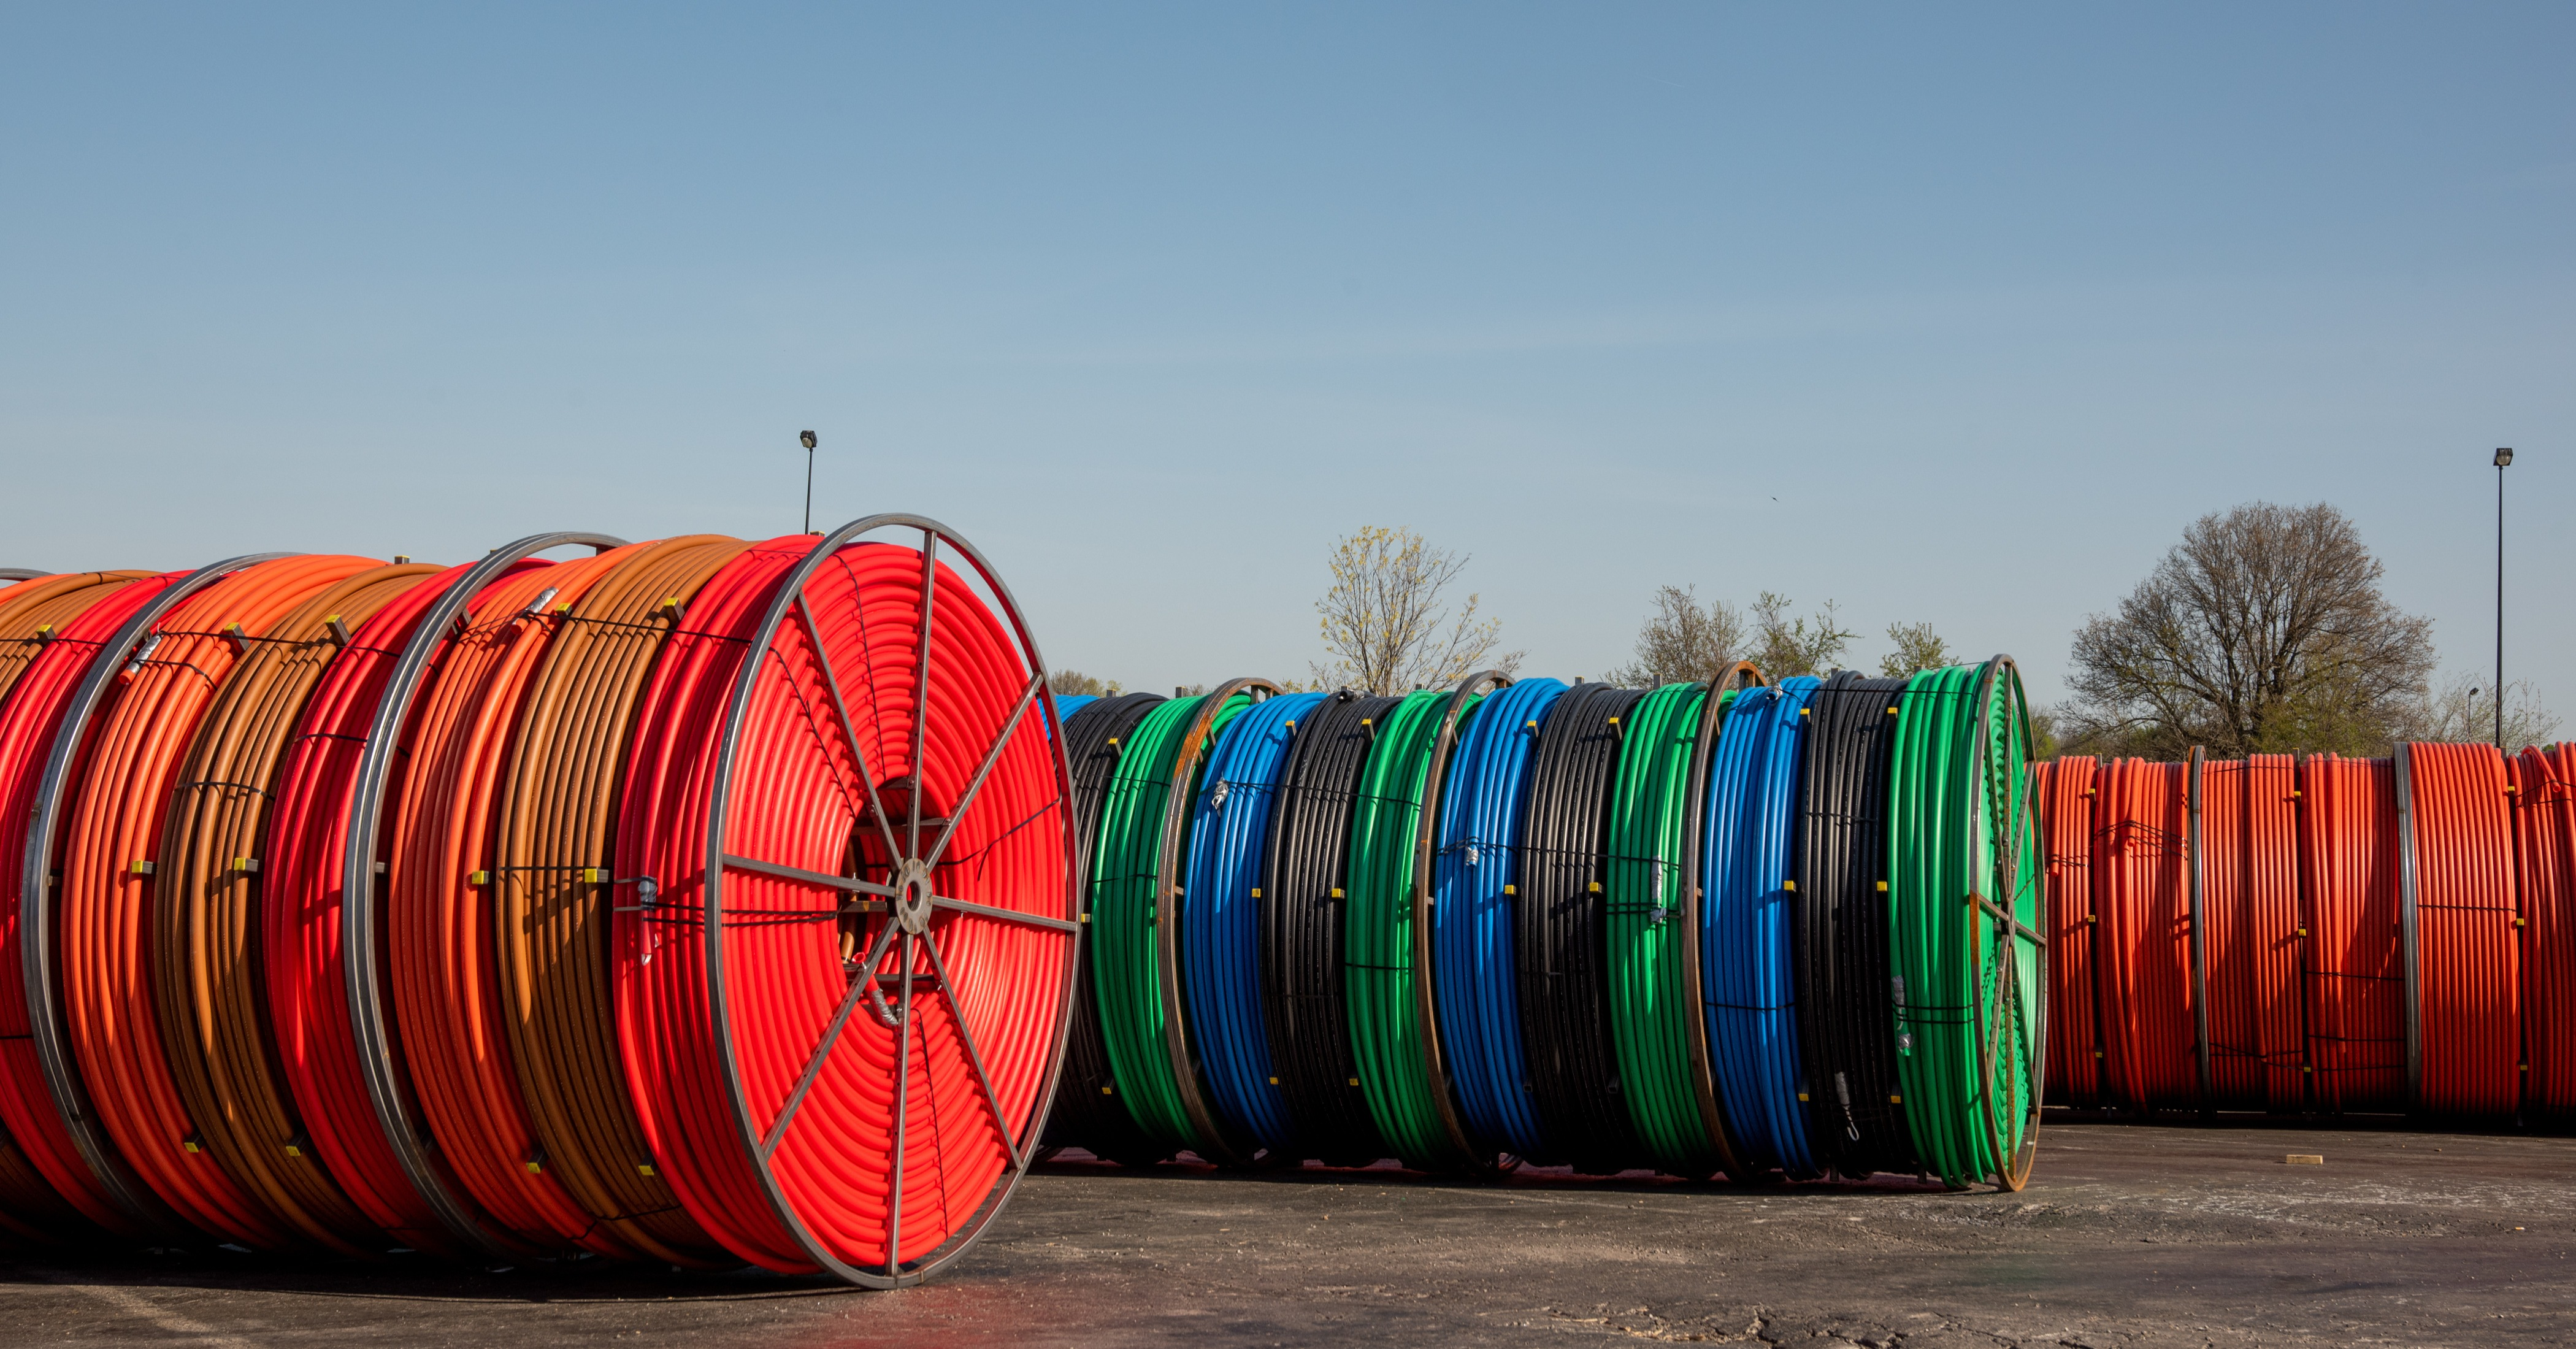 Versatile and Durable: HDPE Pipe's Many Uses and Applications